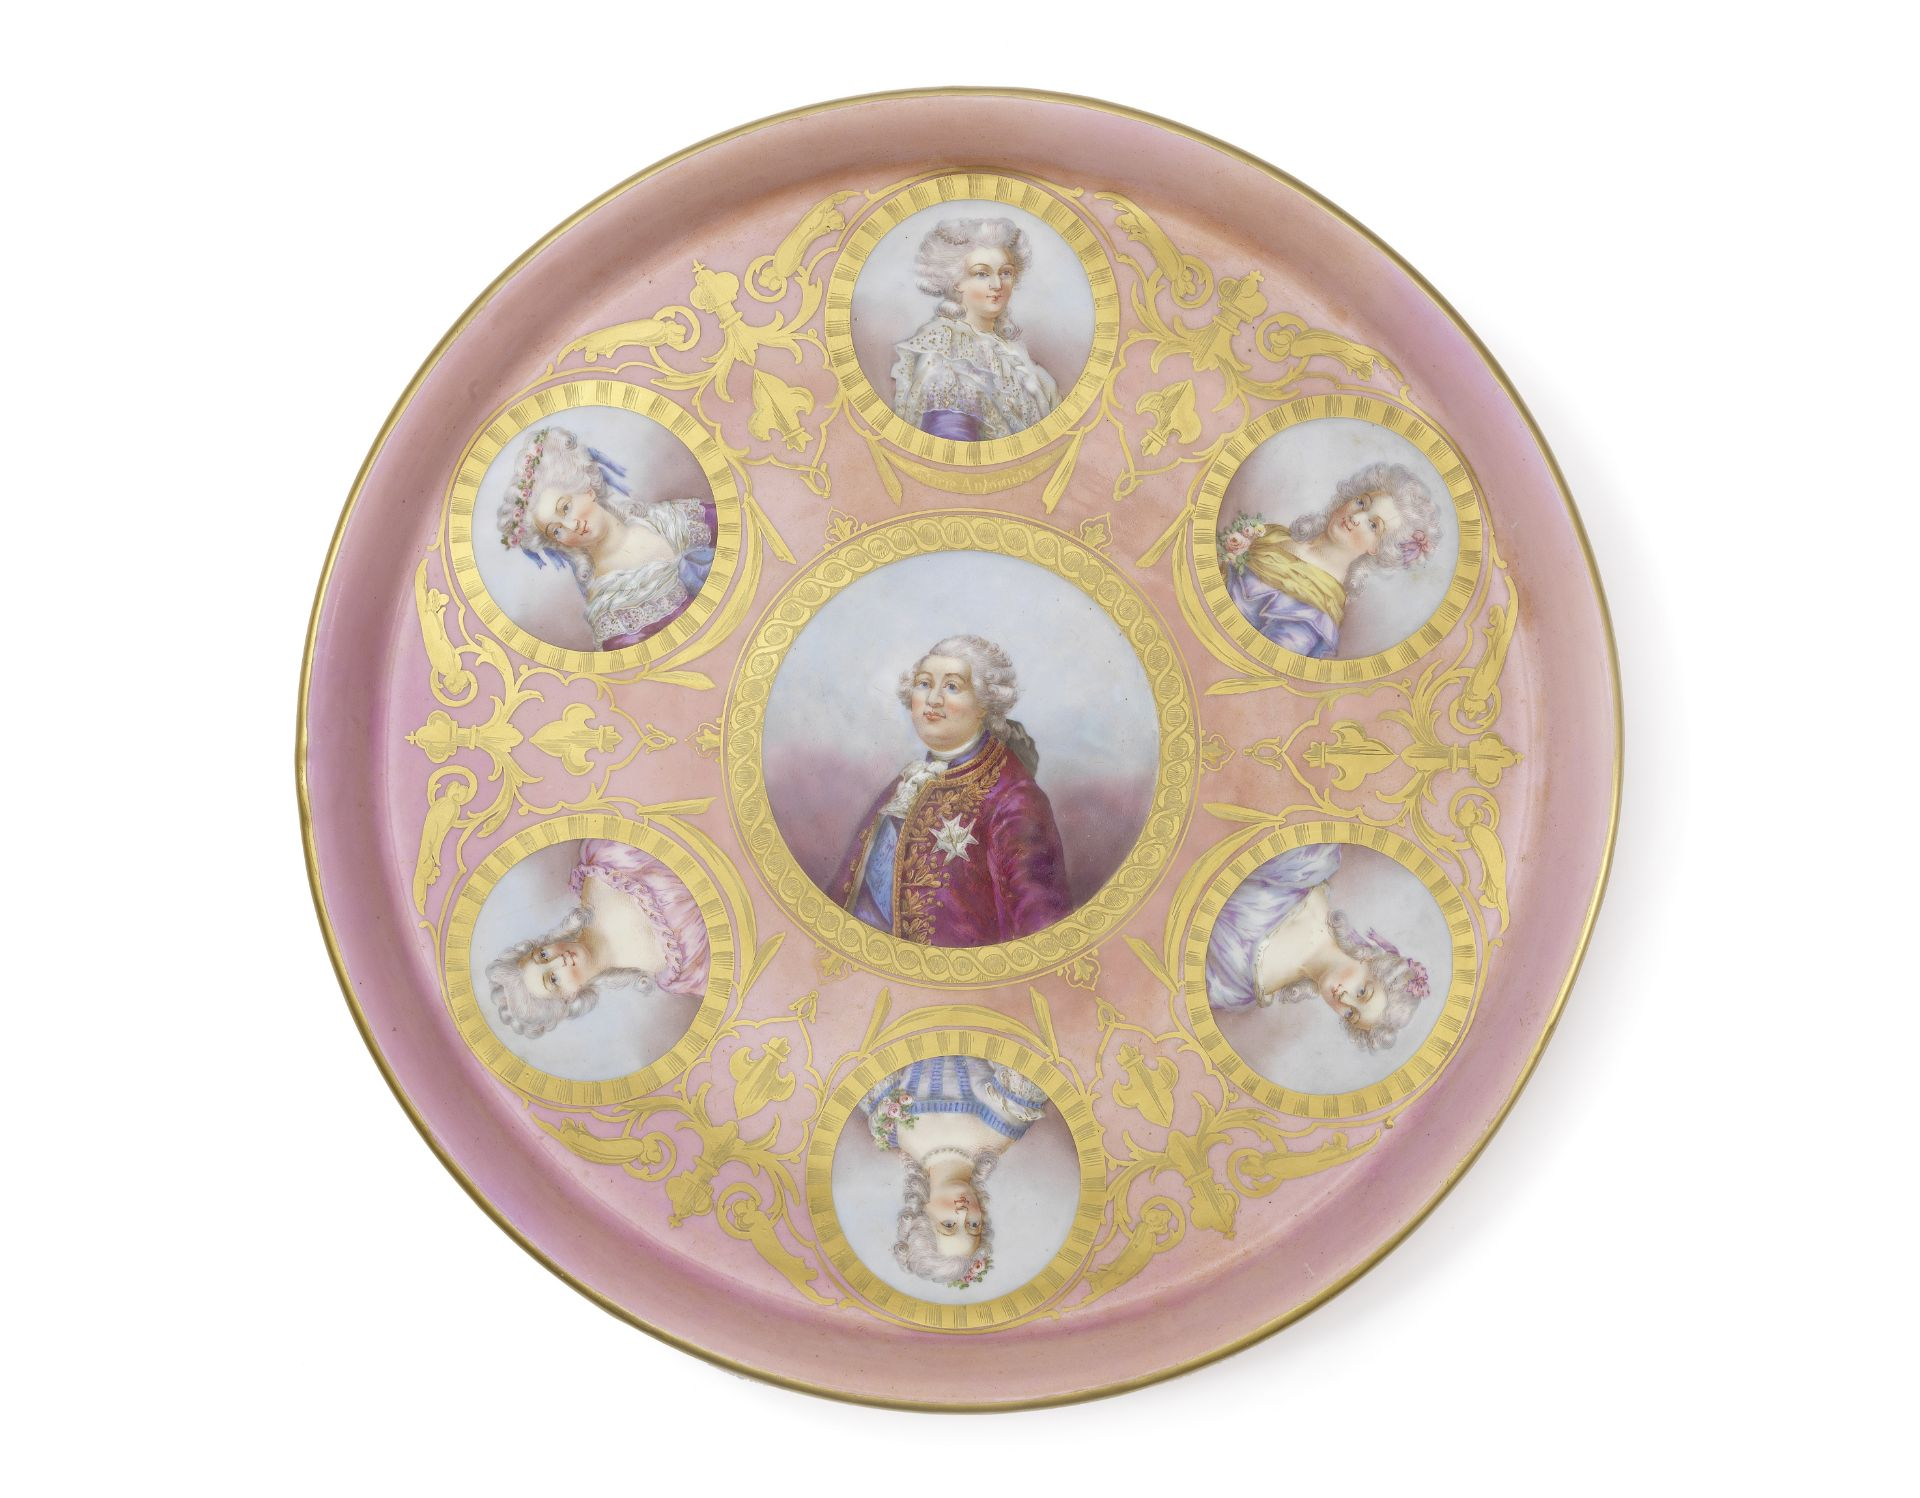 Los 130 - A French late 19th century Sevres style porcelain cabaret tray